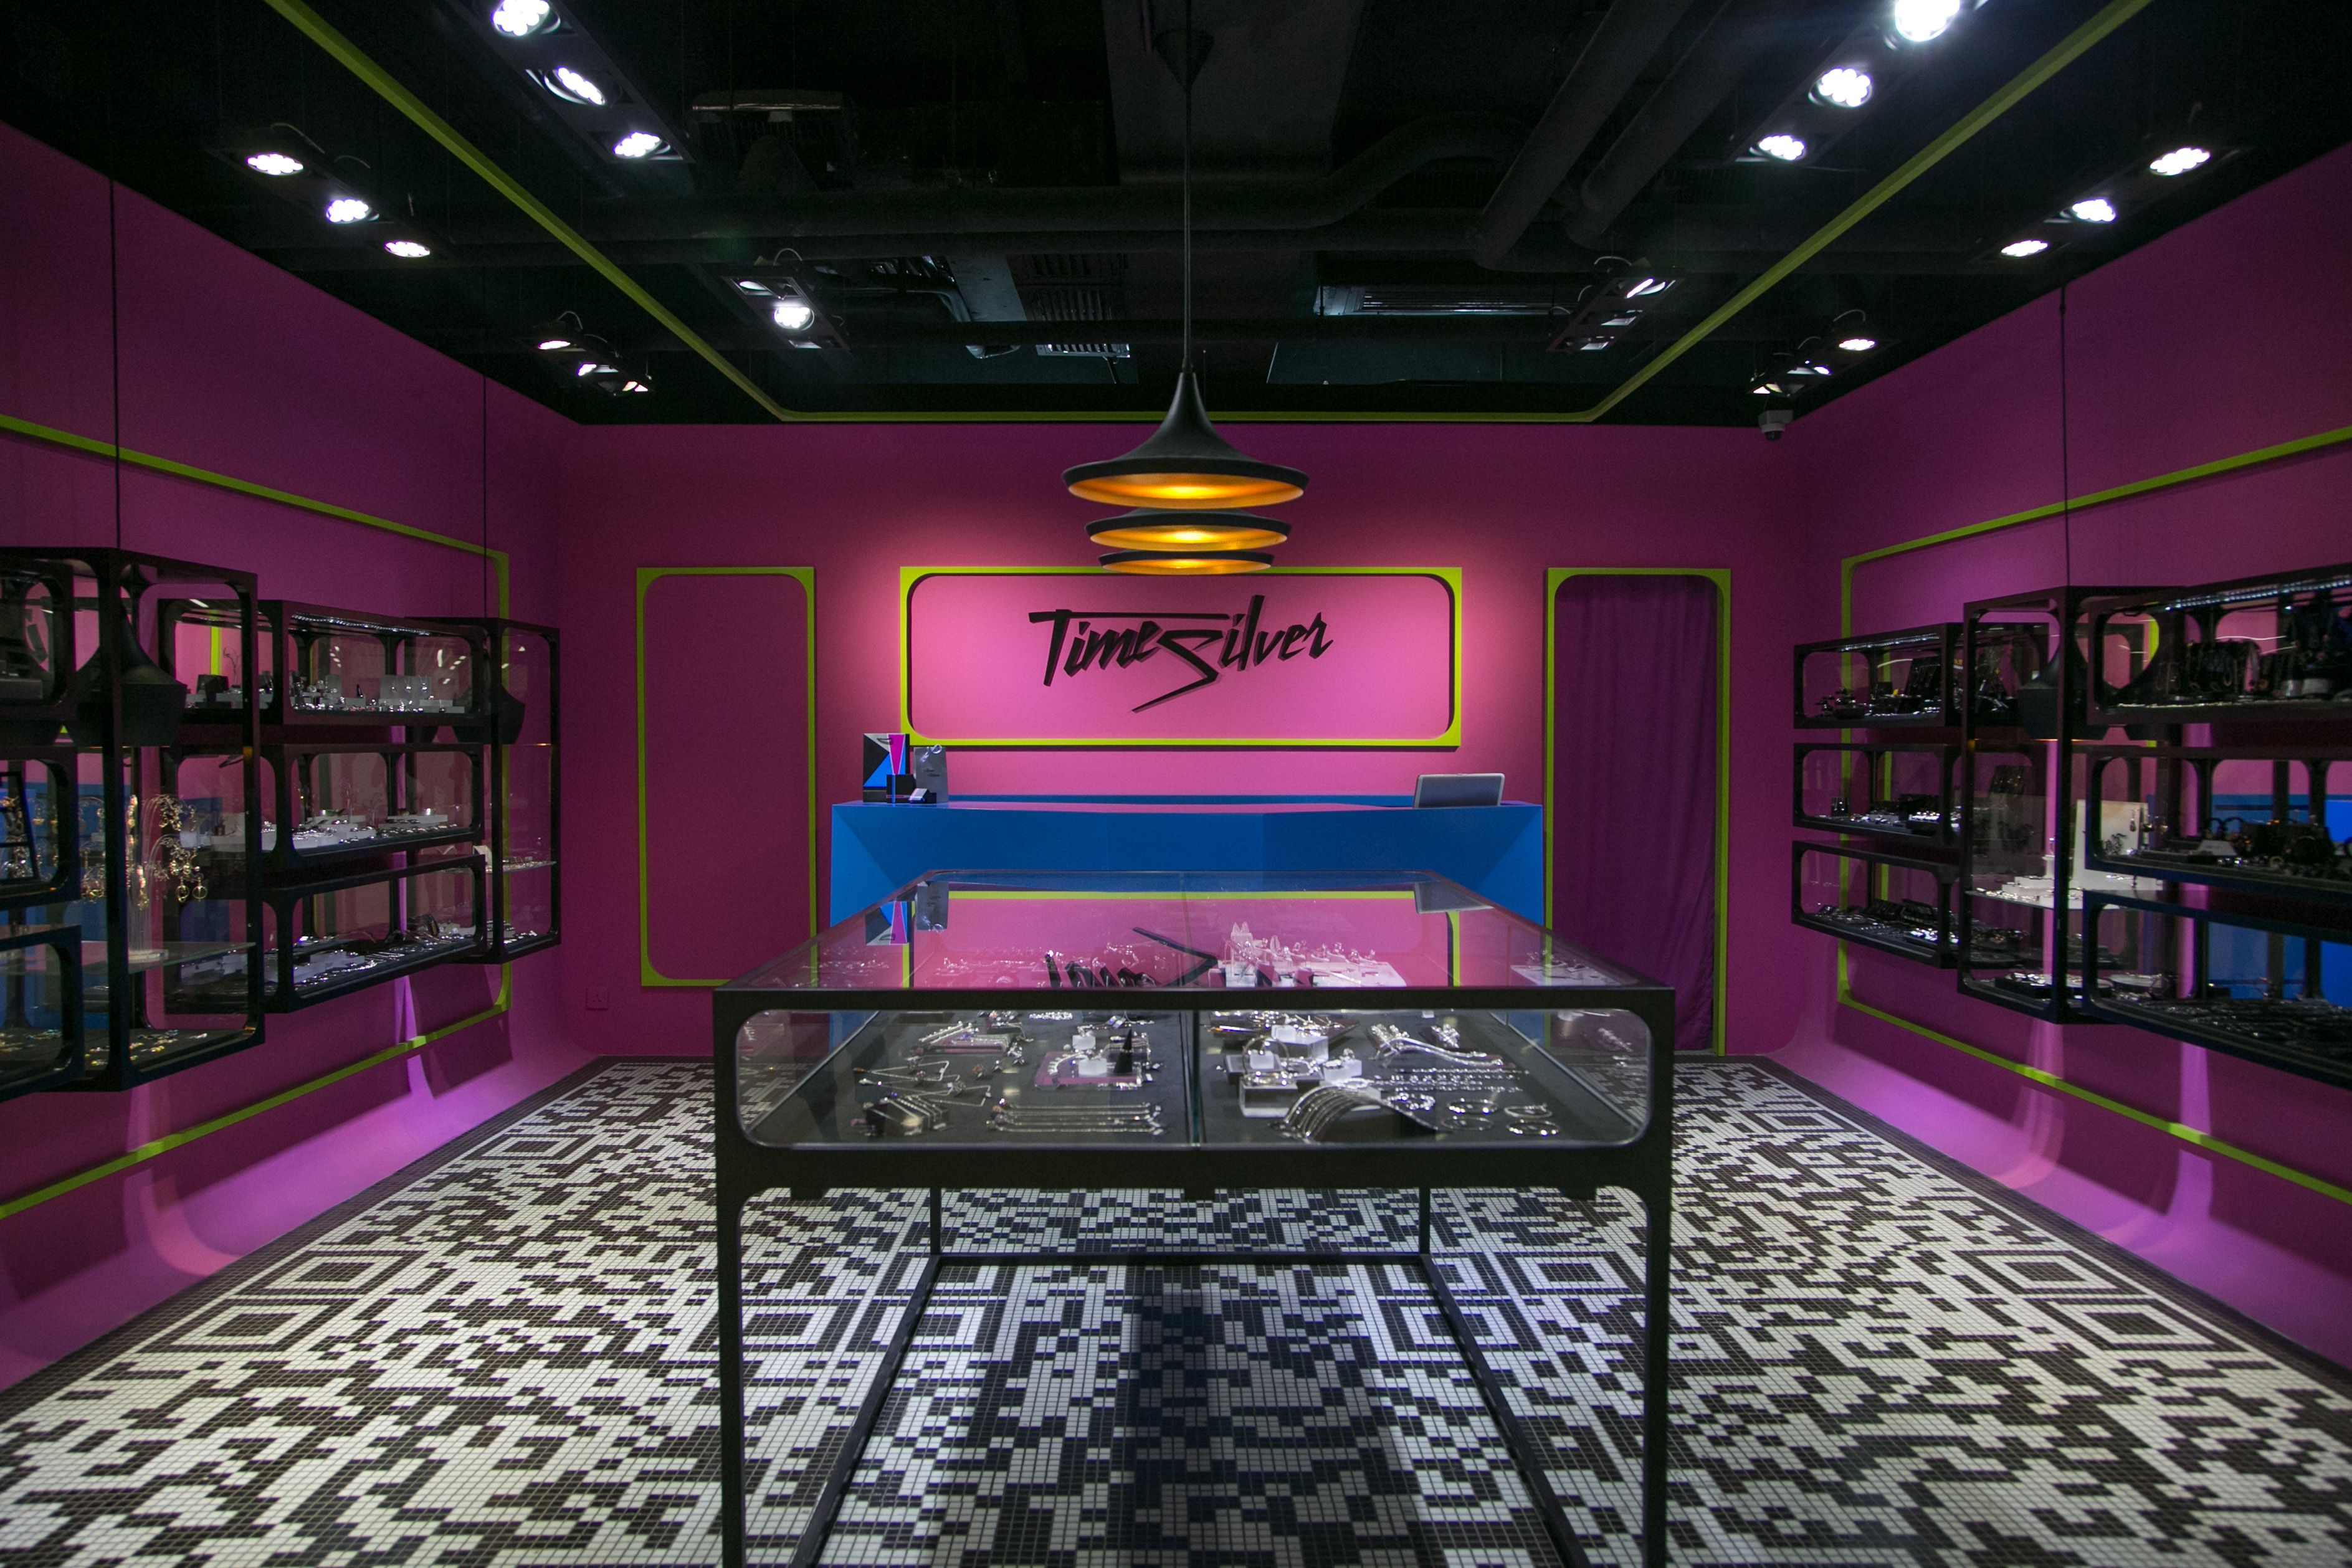 Time Silver jewelry store in Tsuen Wan, Hong Kong by Liquid Interiors - retail interior design, QR codes tiles, pink and blue, jewelry display, pop art